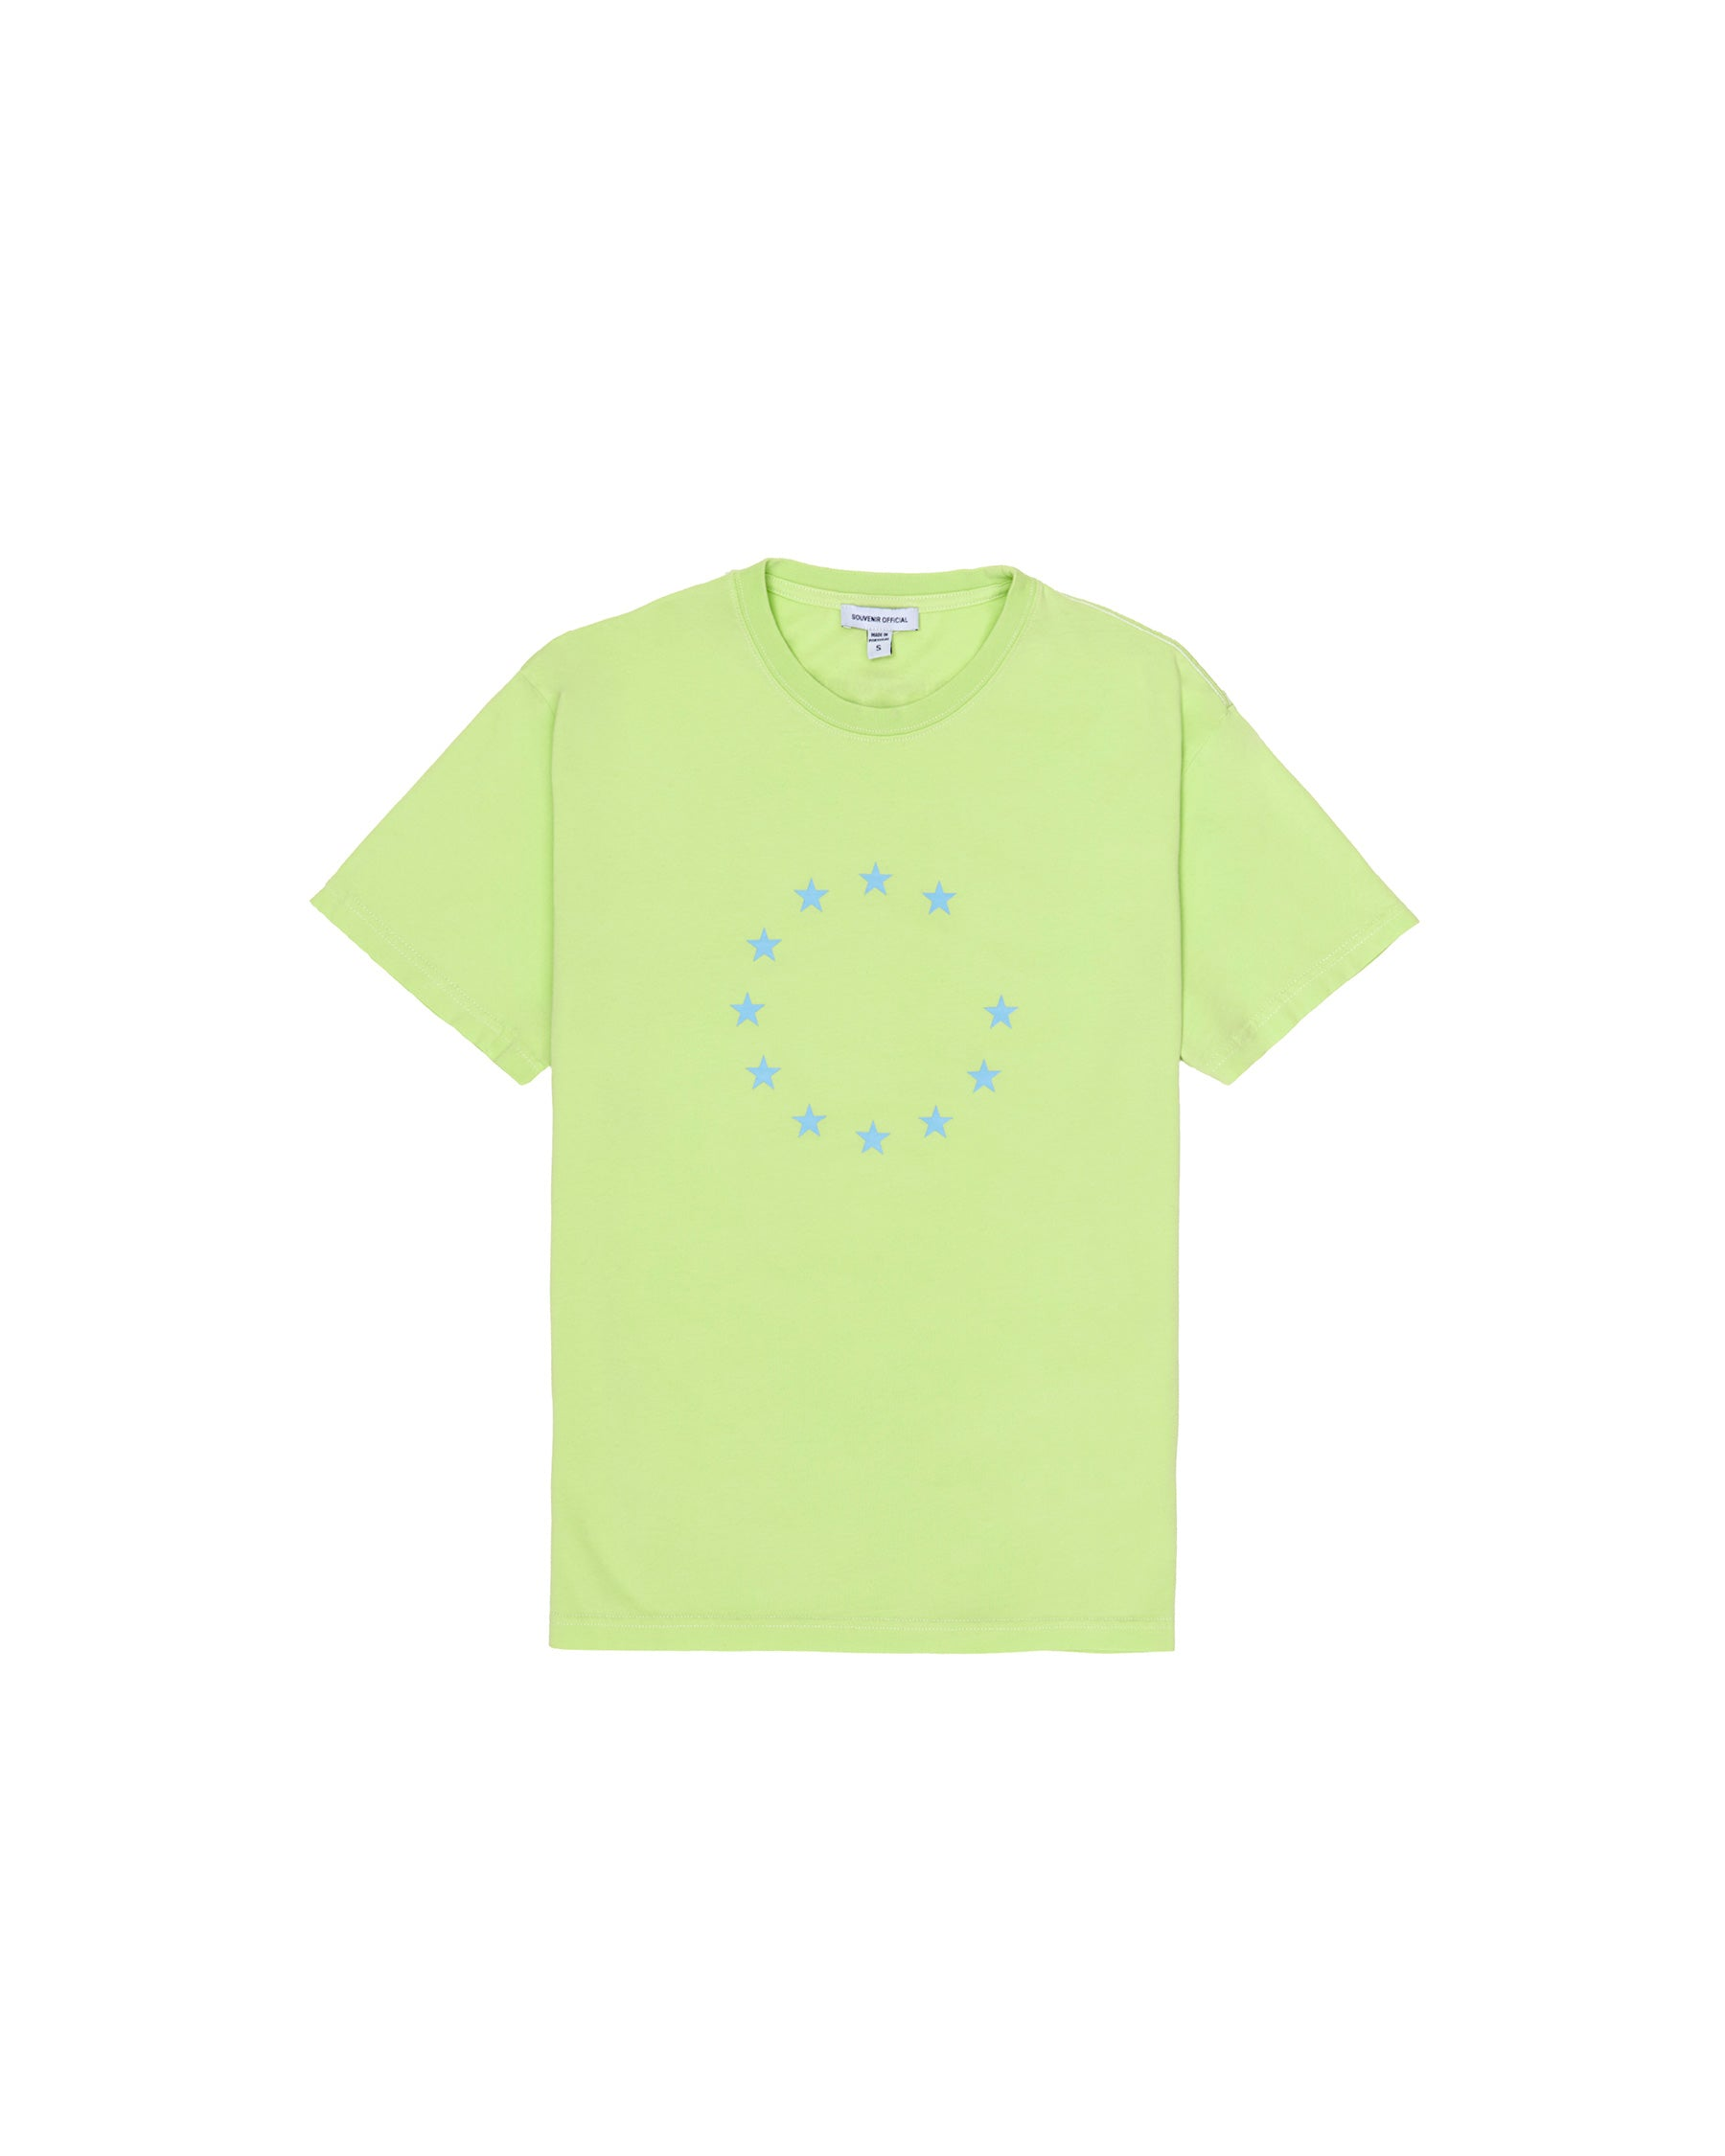 PROTECT PEACE T-SHIRT LIME